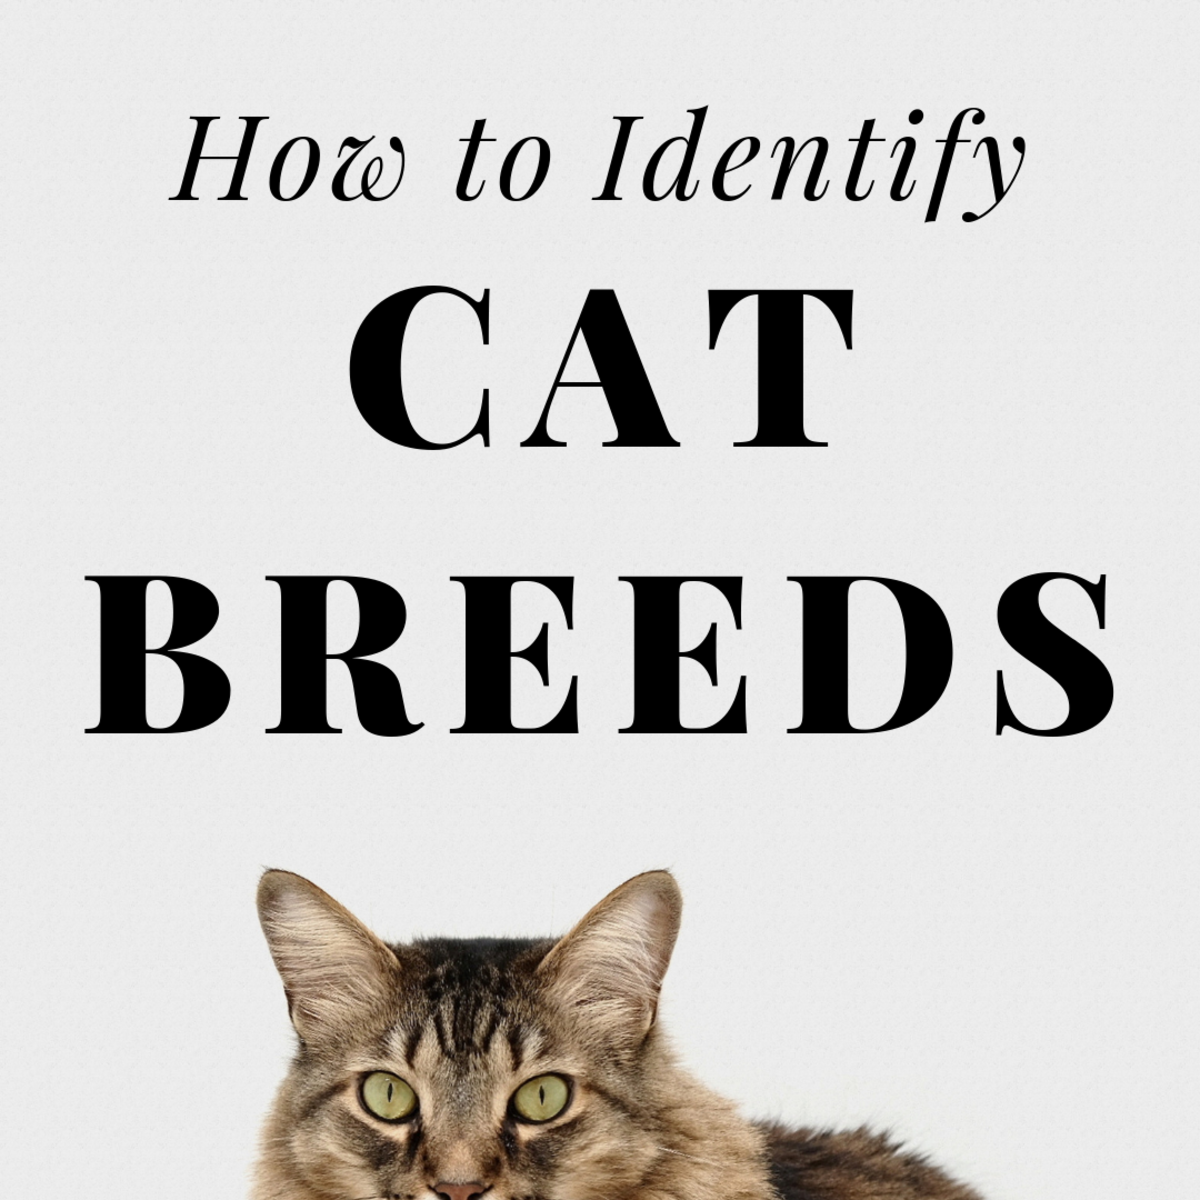 From Ear Tufts to Fluffy Tails: How to Identify Your Pet Cat's Breed